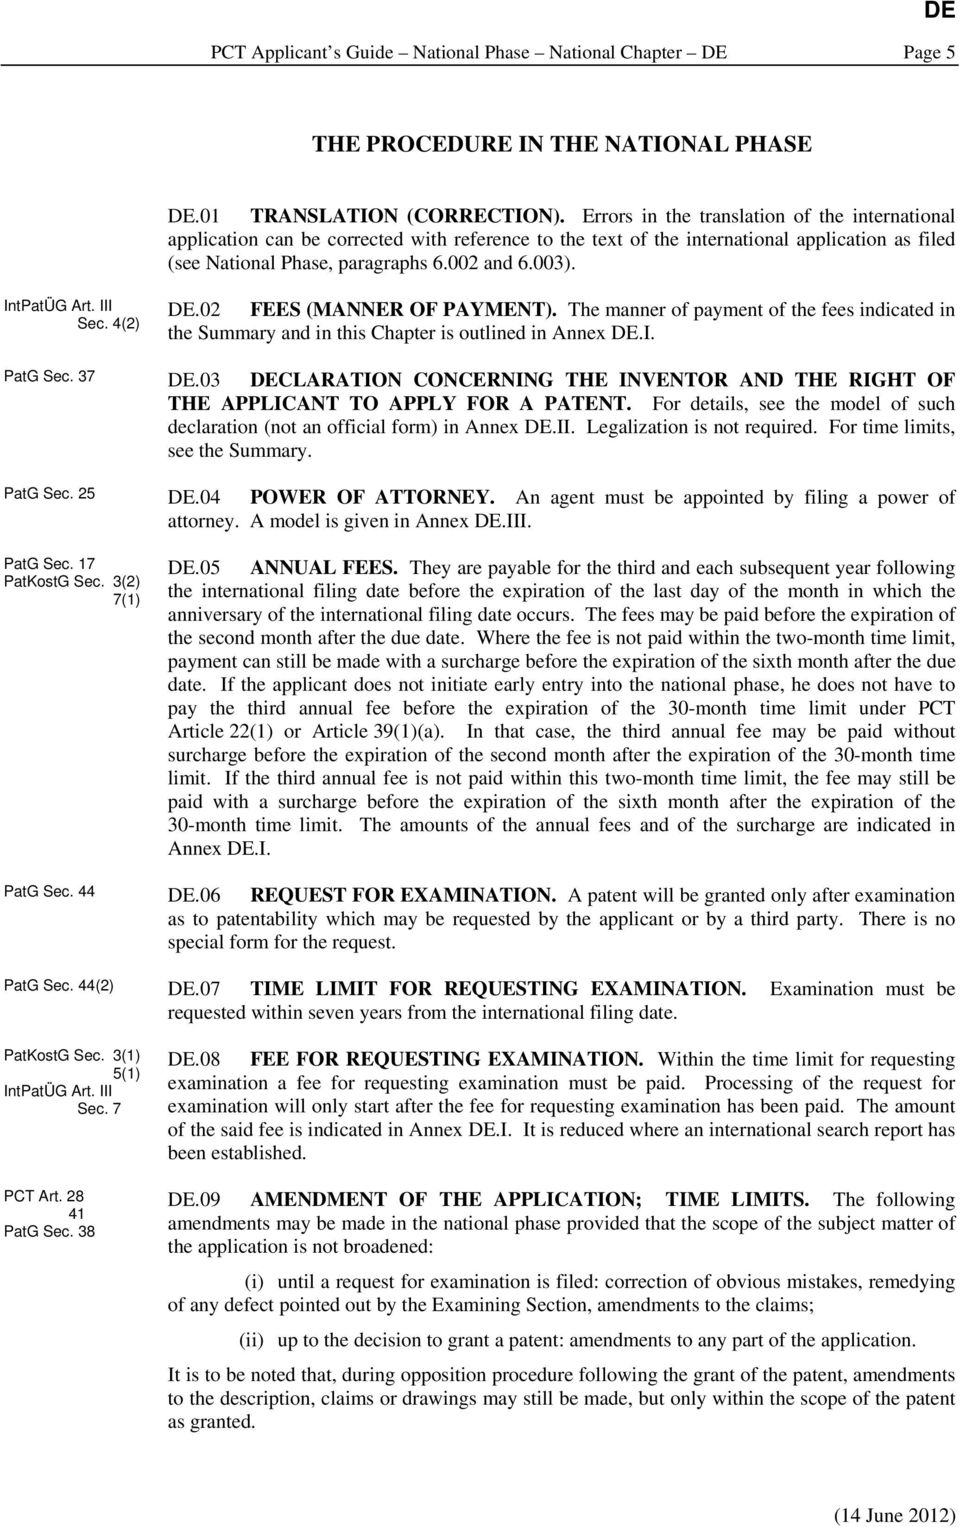 IntPatÜG Art. III Sec. 4(2).02 FEES (MANNER OF PAYMENT). The manner of payment of the fees indicated in the Summary and in this Chapter is outlined in Annex.I. PatG Sec. 37.